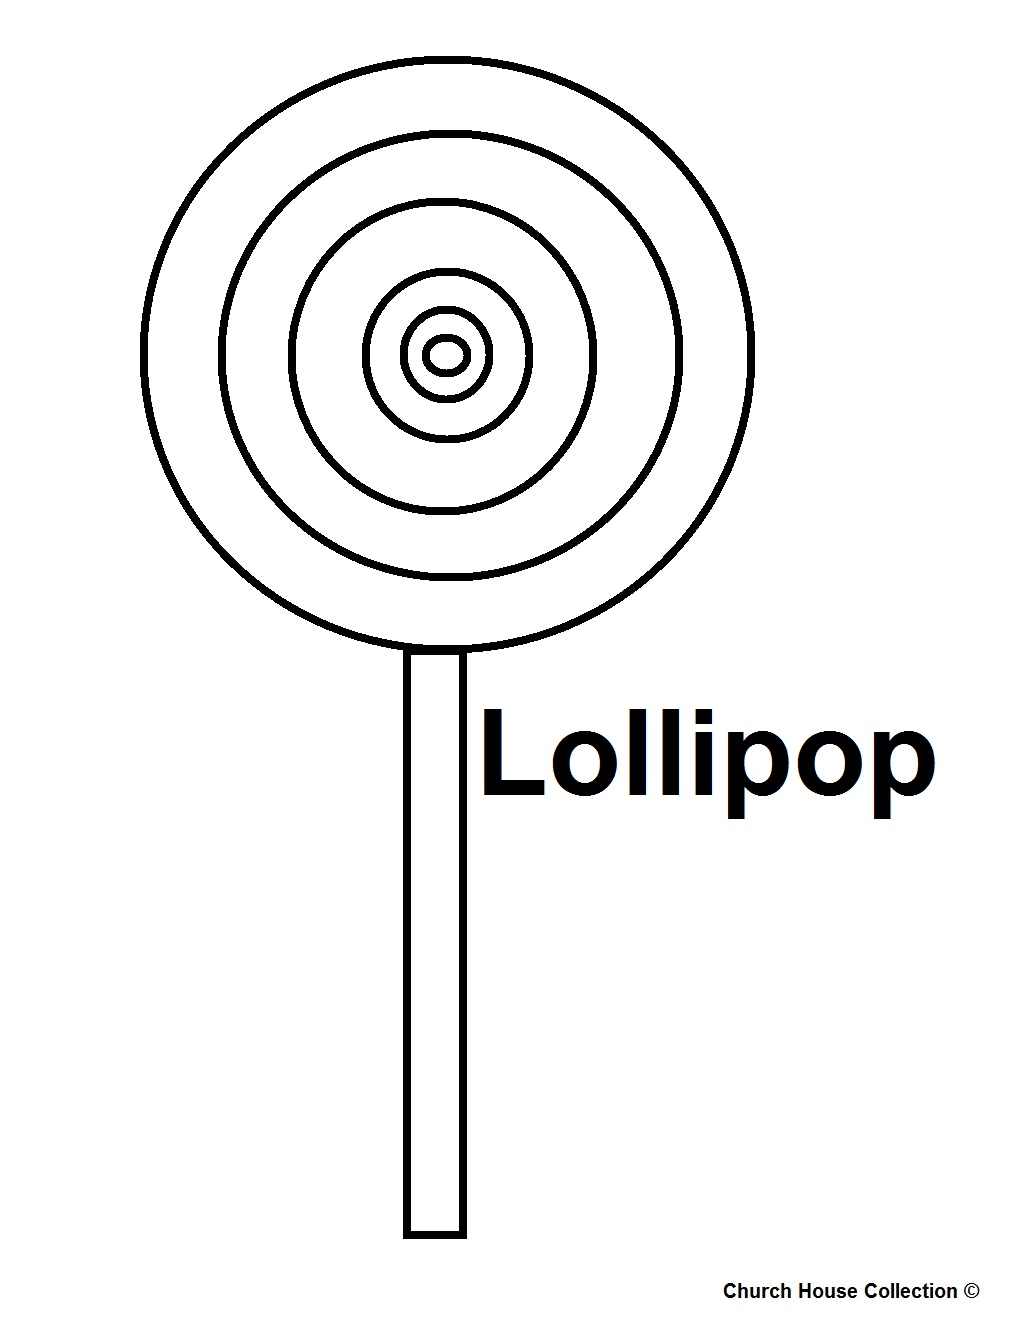 Drawn lollipop Lollipop page Coloring Pages Food